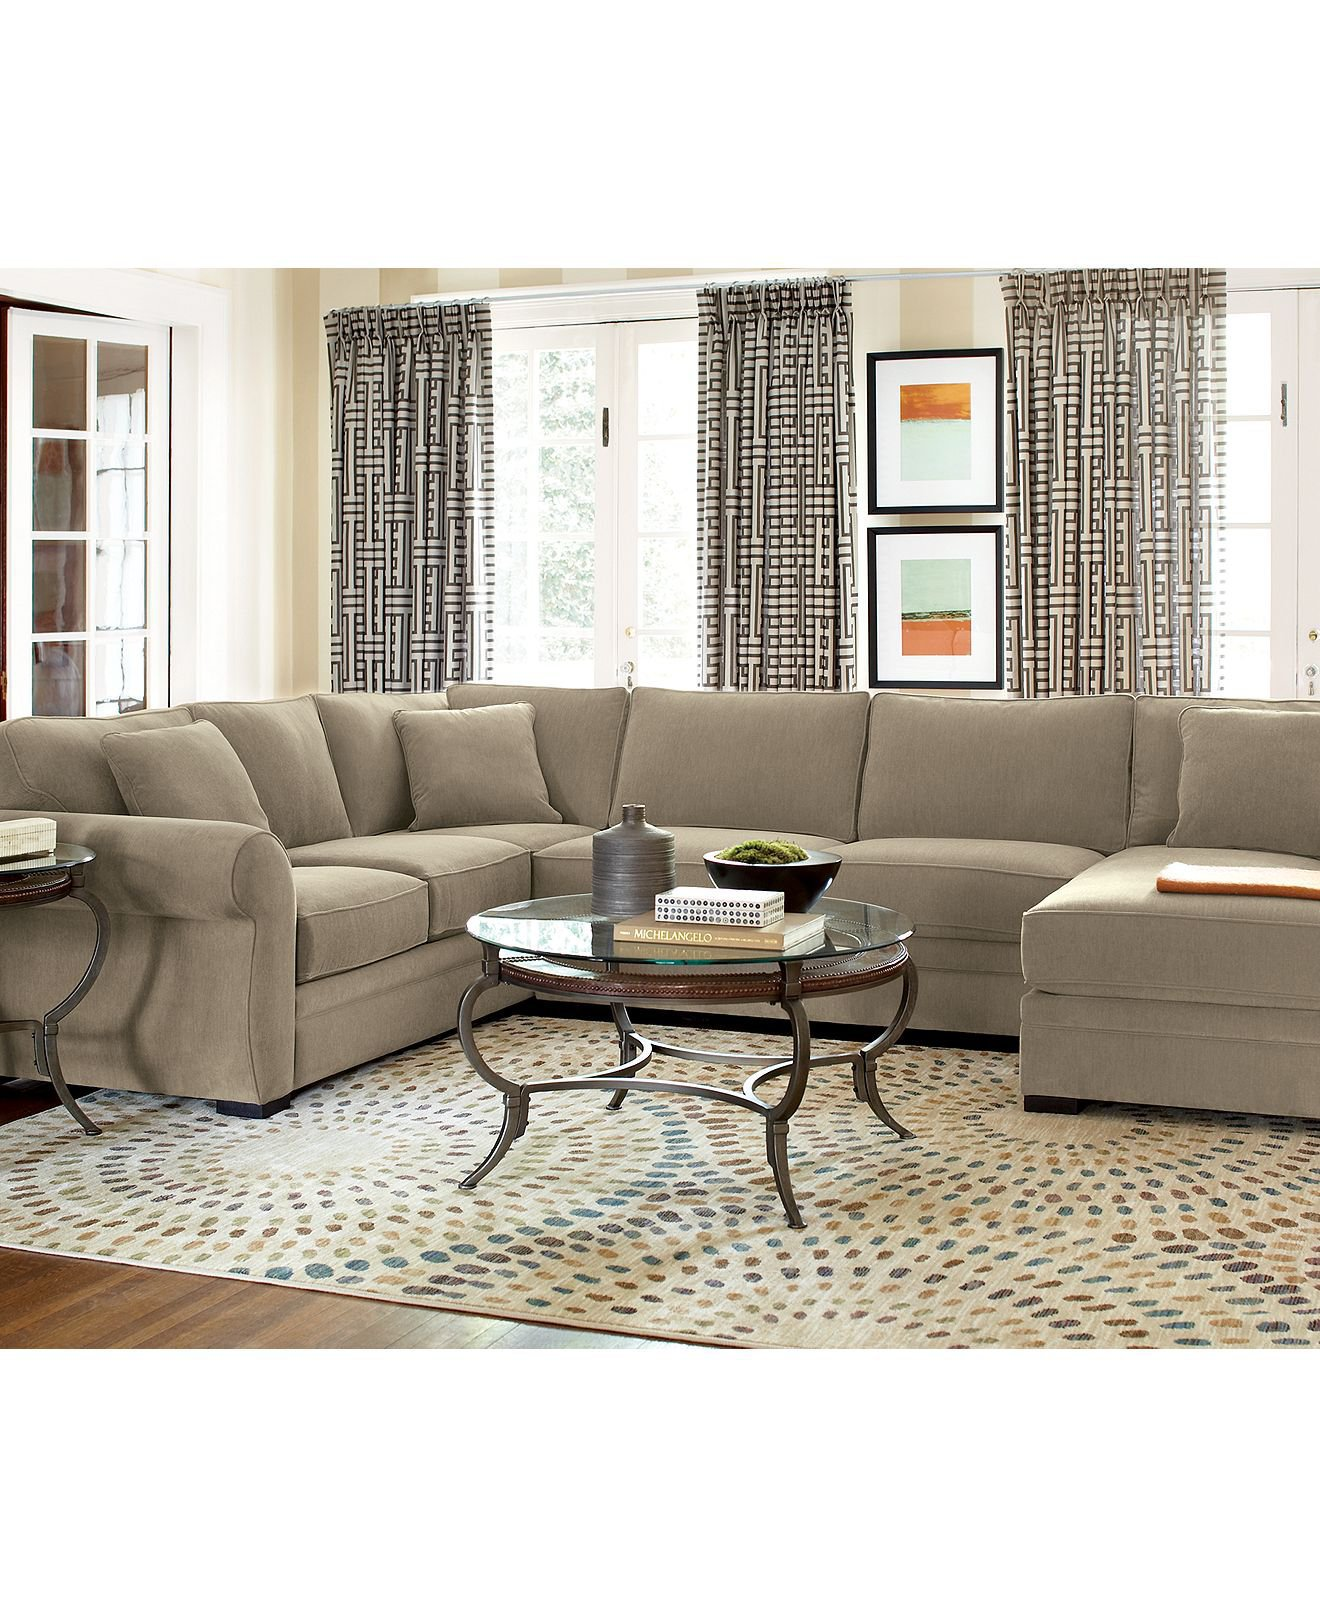 Devon living room furniture sets from macy 39 s the house for Couch living room furniture